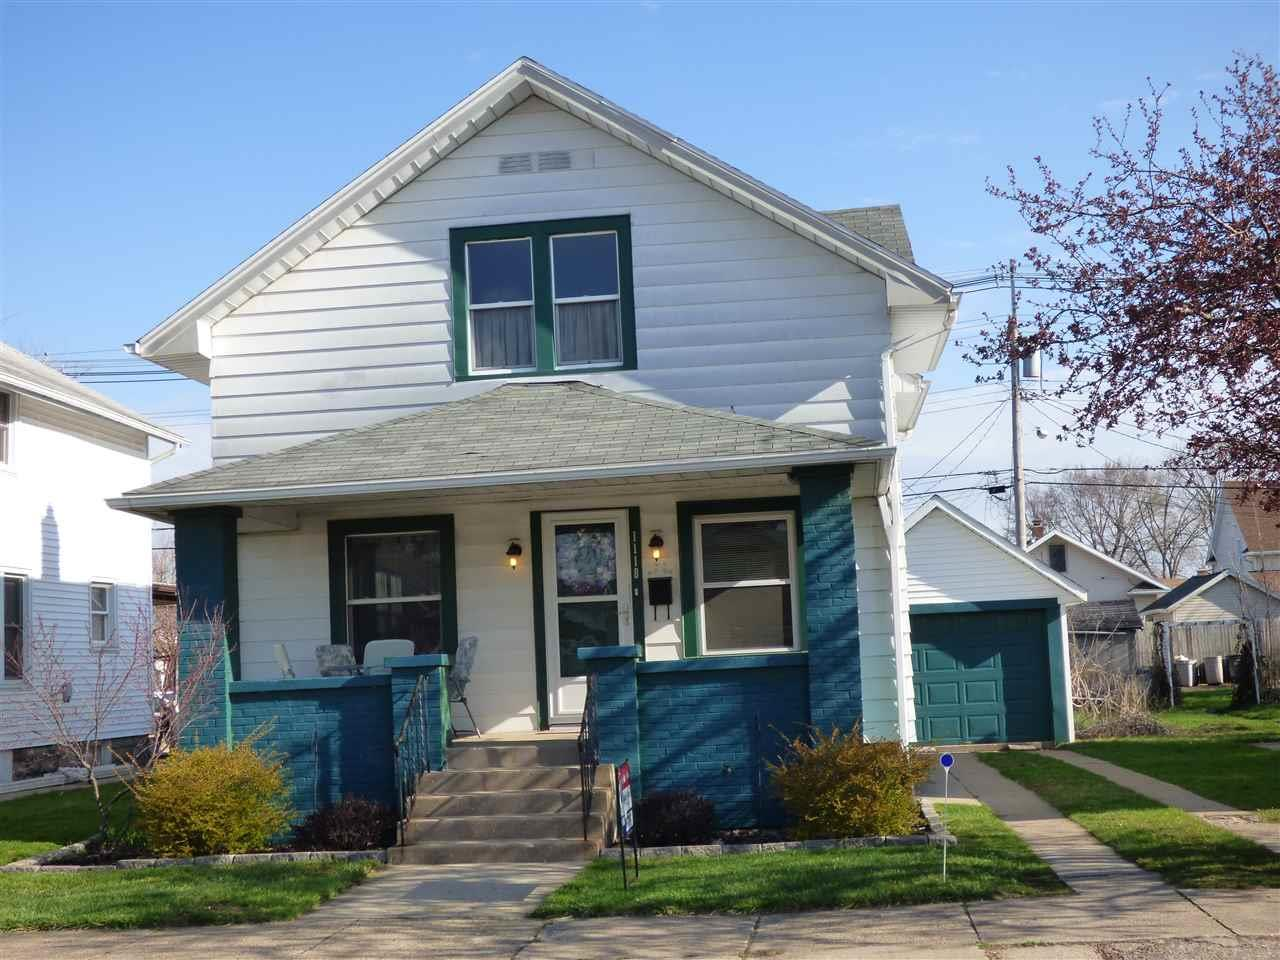 1118 W 7th Mishawaka, IN 46544